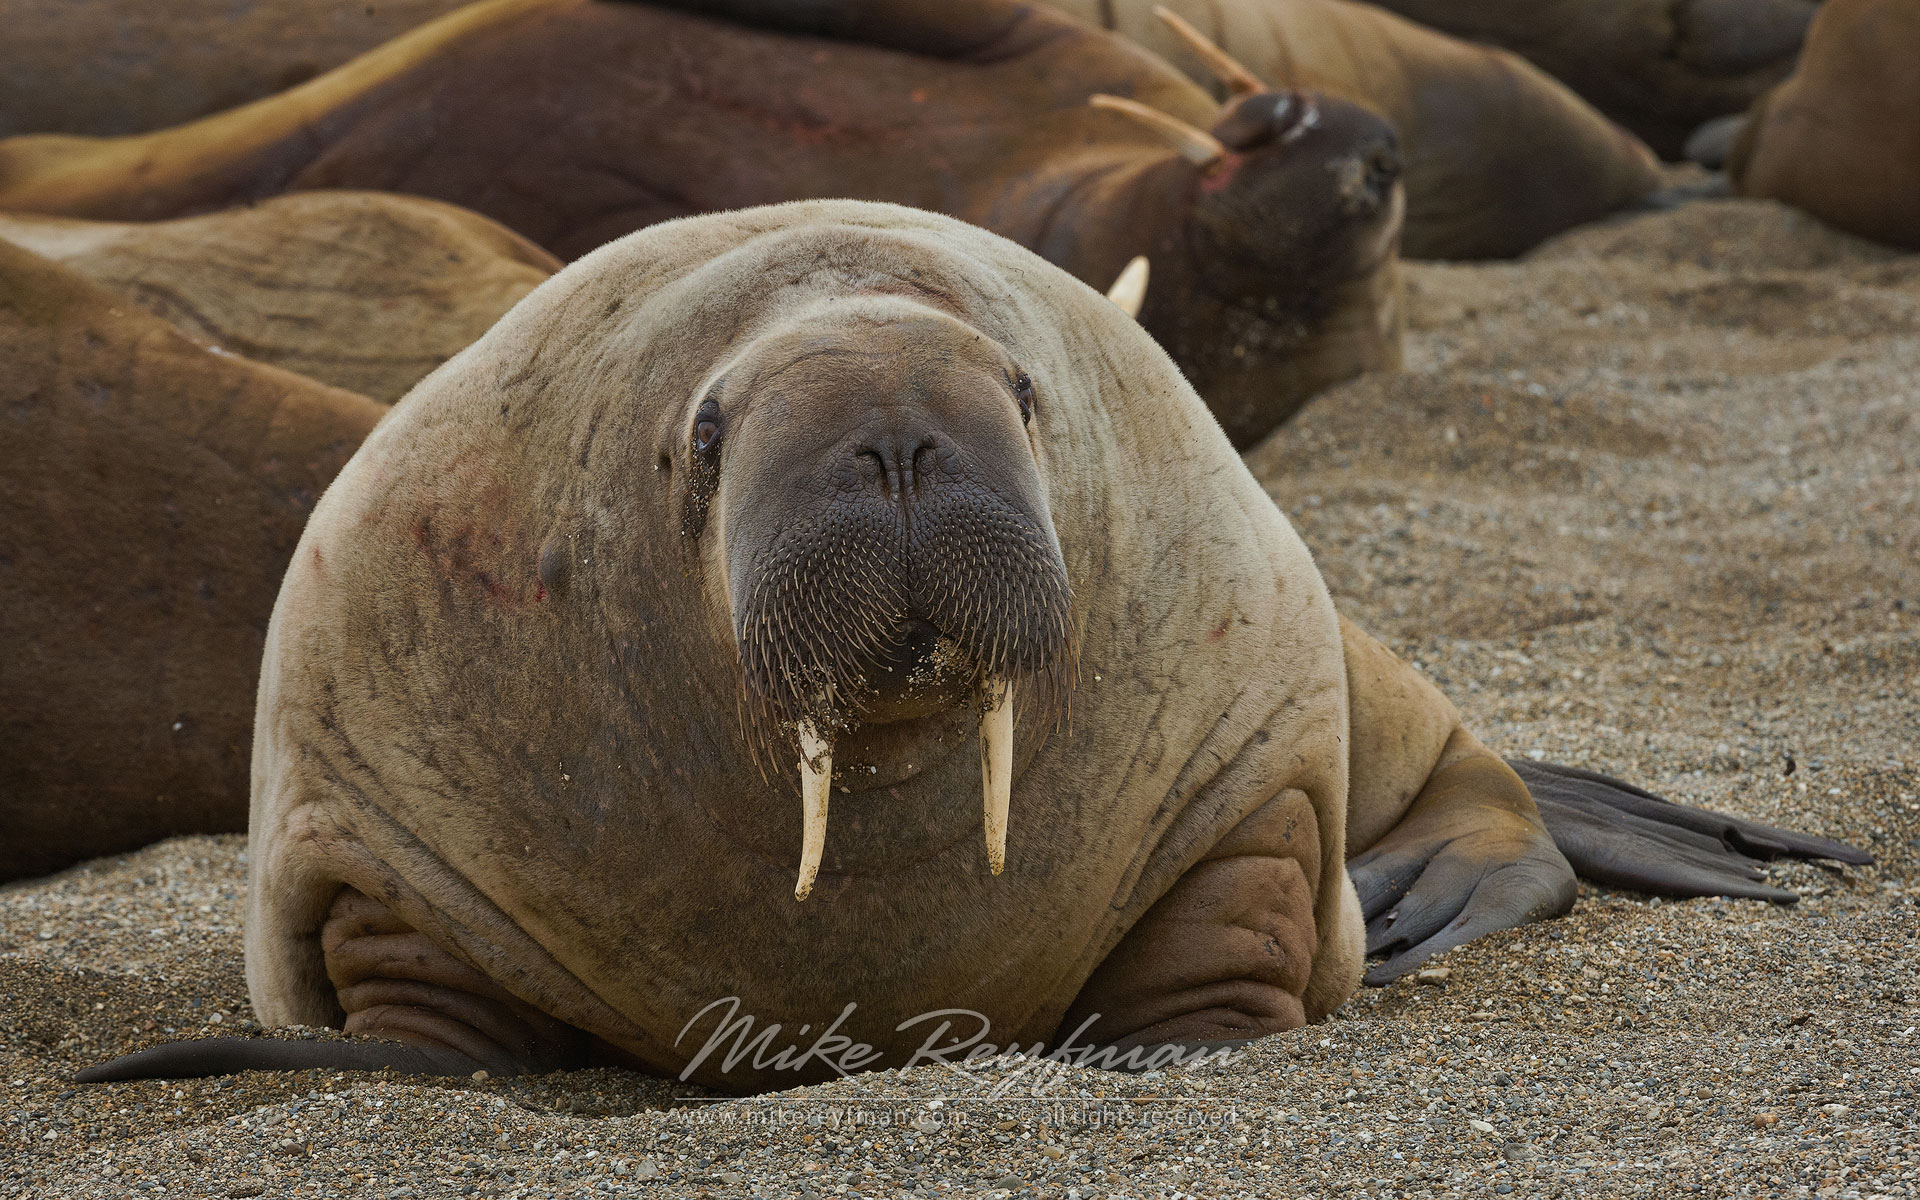 Curious Walrus (Odobenus rosmarus) pops up to say hello at Torrelnesset, Svalbard (Spitsbergen) Archipelago, Norway. - Wildlife-Svalbard-Spitsbergen-Norway - Mike Reyfman Photography